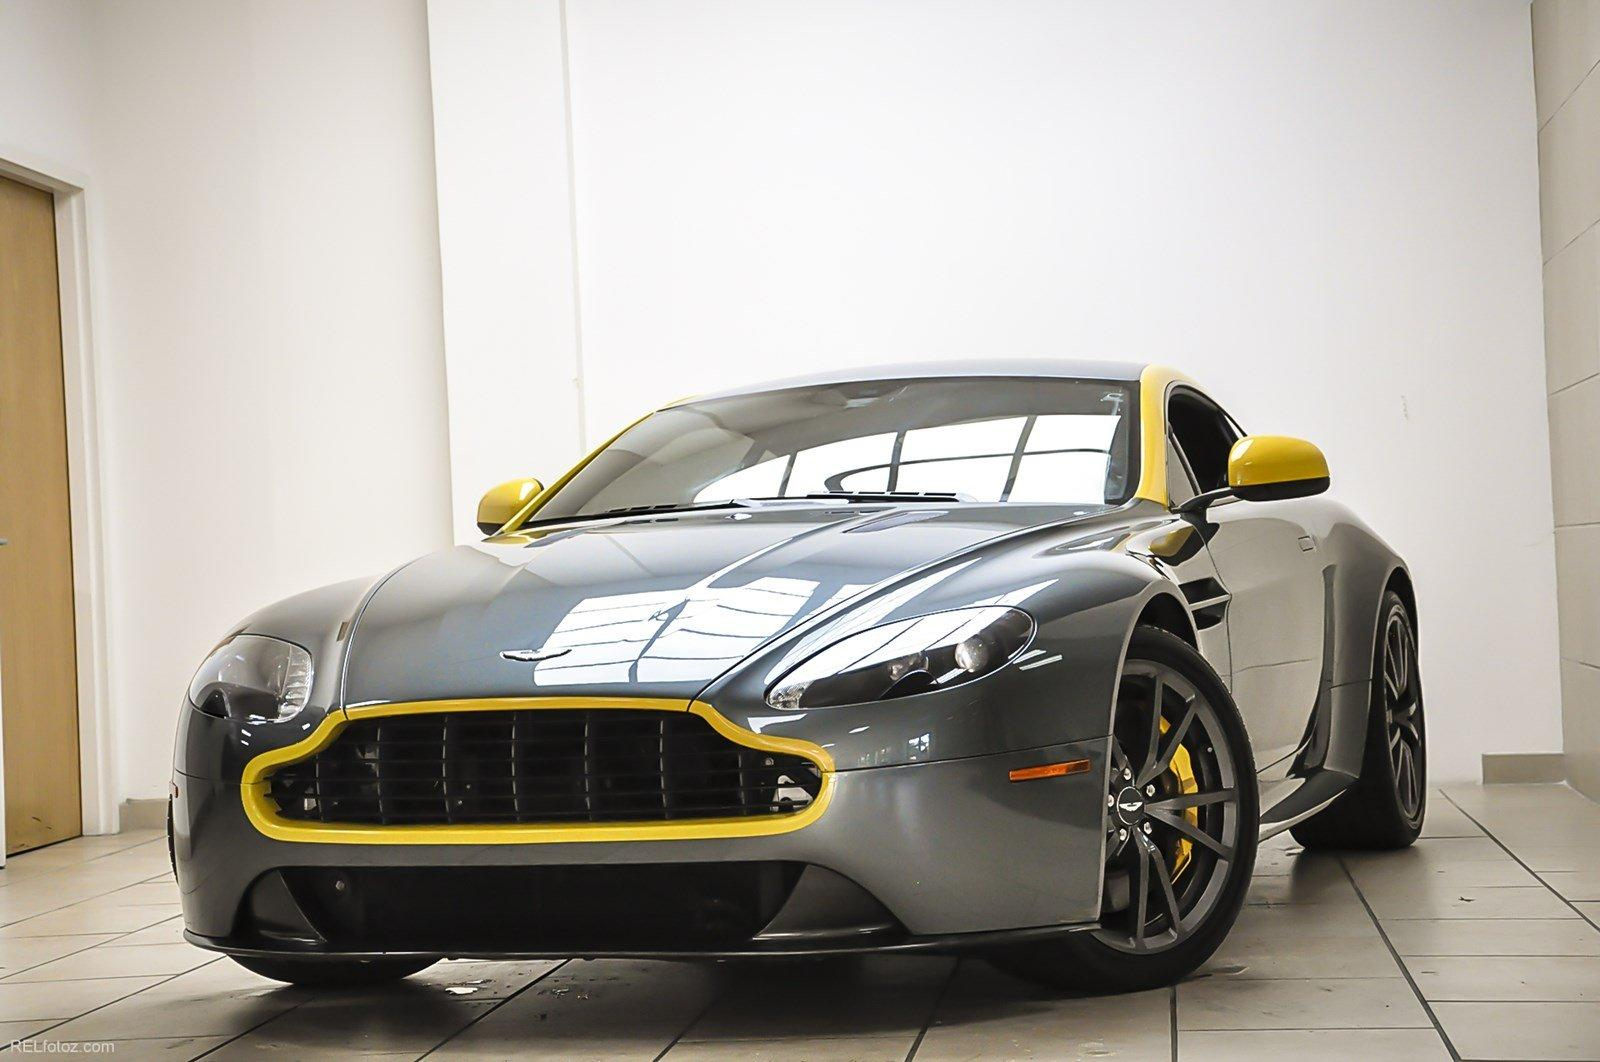 Gravity Autos Roswell >> 2015 Aston Martin V8 Vantage GT Stock # C18977 for sale near Sandy Springs, GA | GA Aston Martin ...